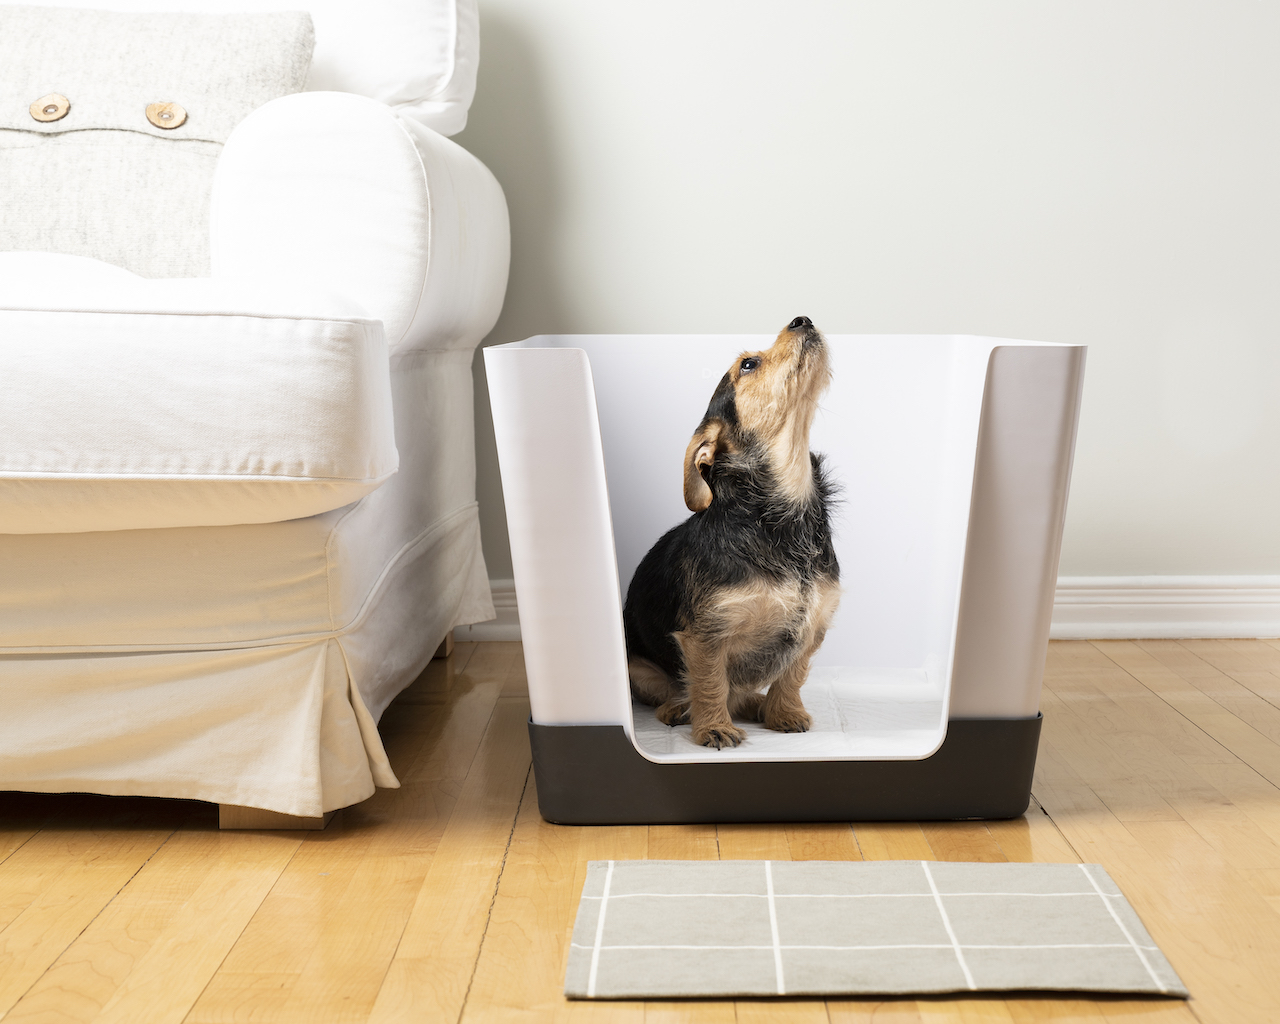 Doggy Bathroom: An Indoor Potty Solution for Small Dogs